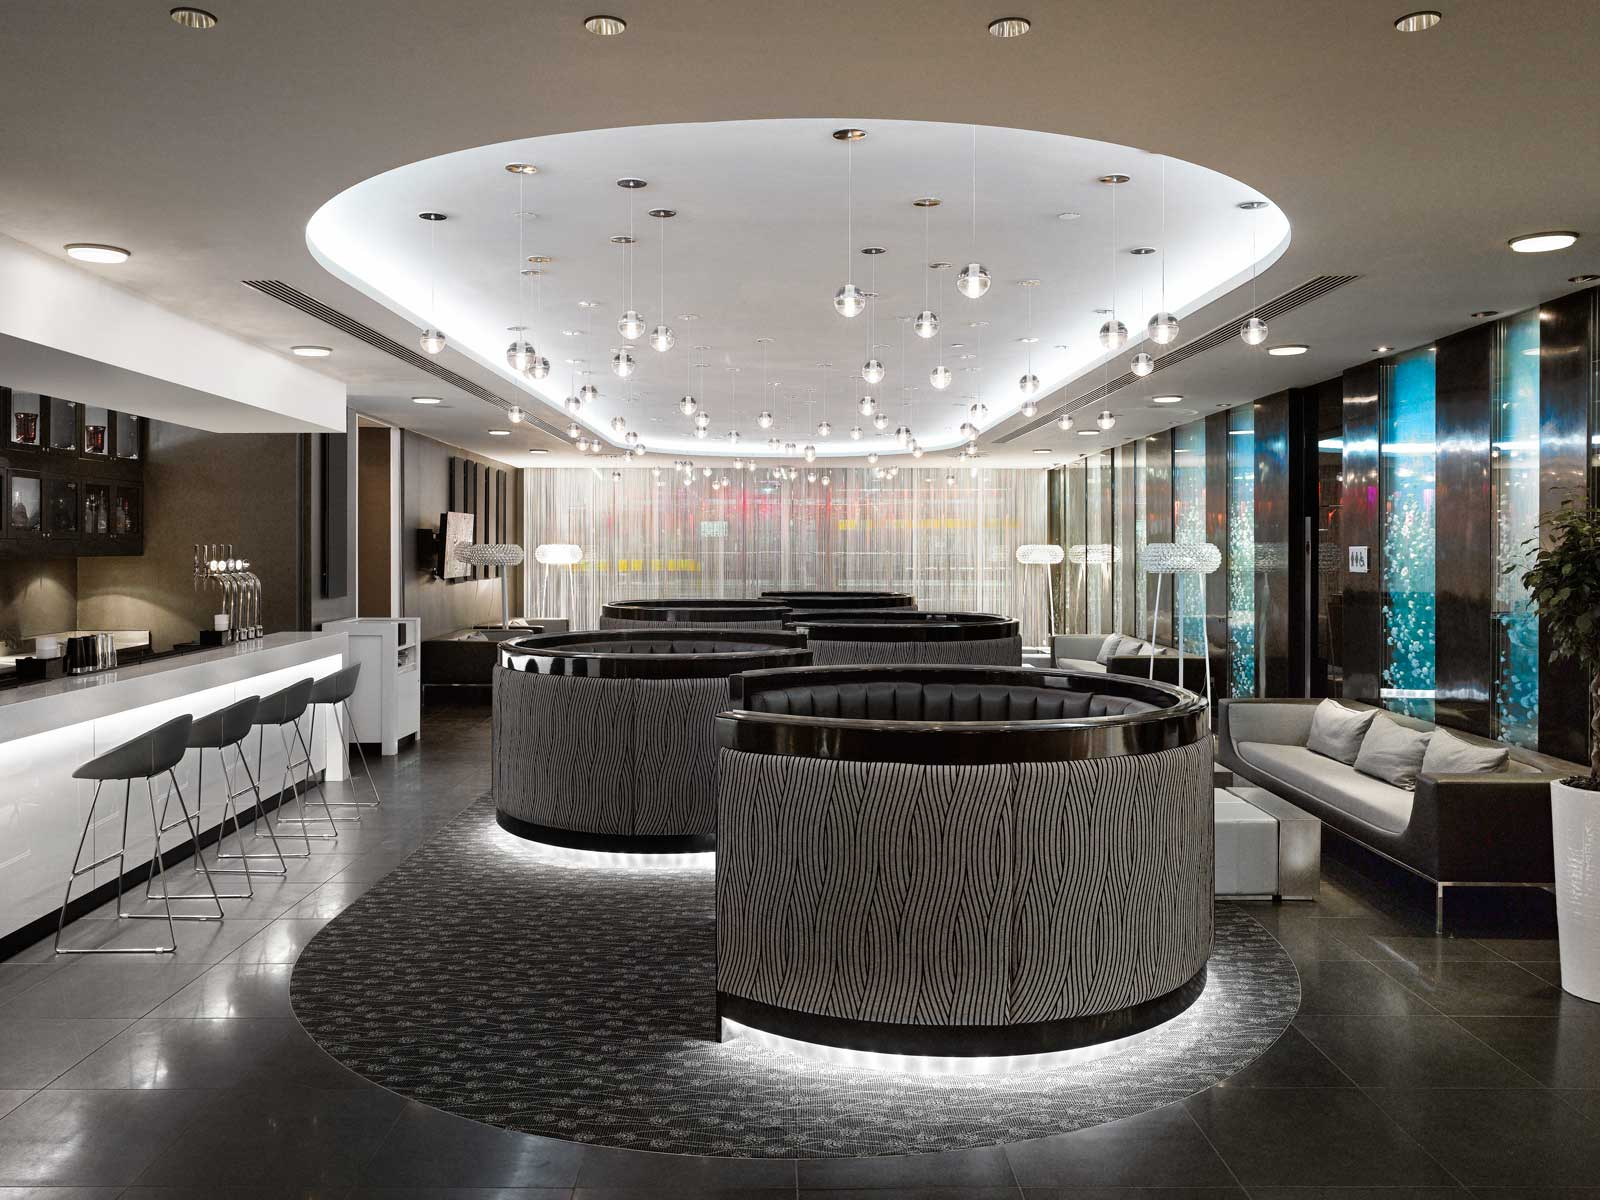 Hilton hotel in liverpool uk by aedas for Hotel design uk